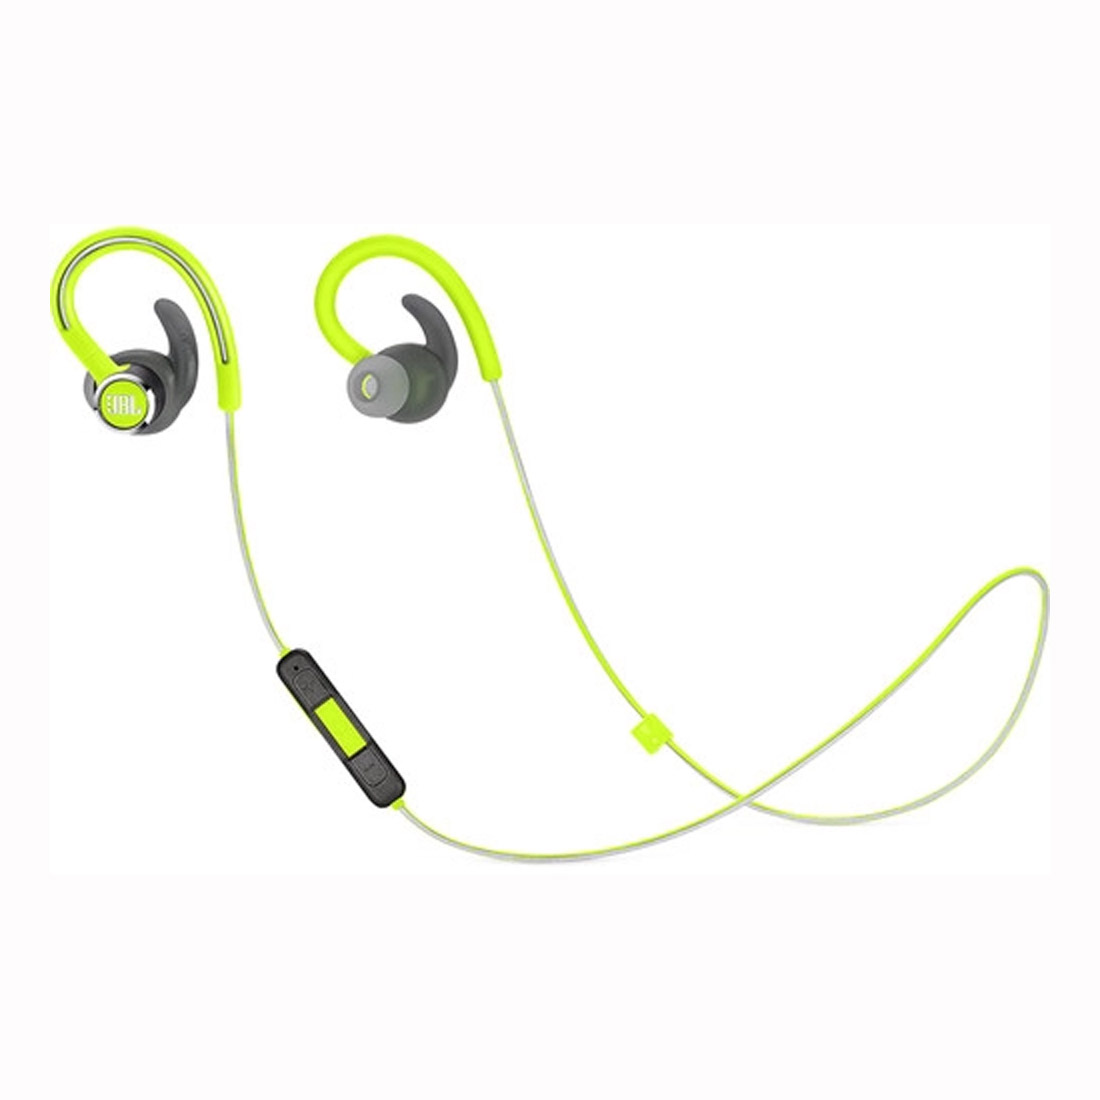 JBL Reflect Contour 2 Wireless Sport In-Ear Headphones - Green